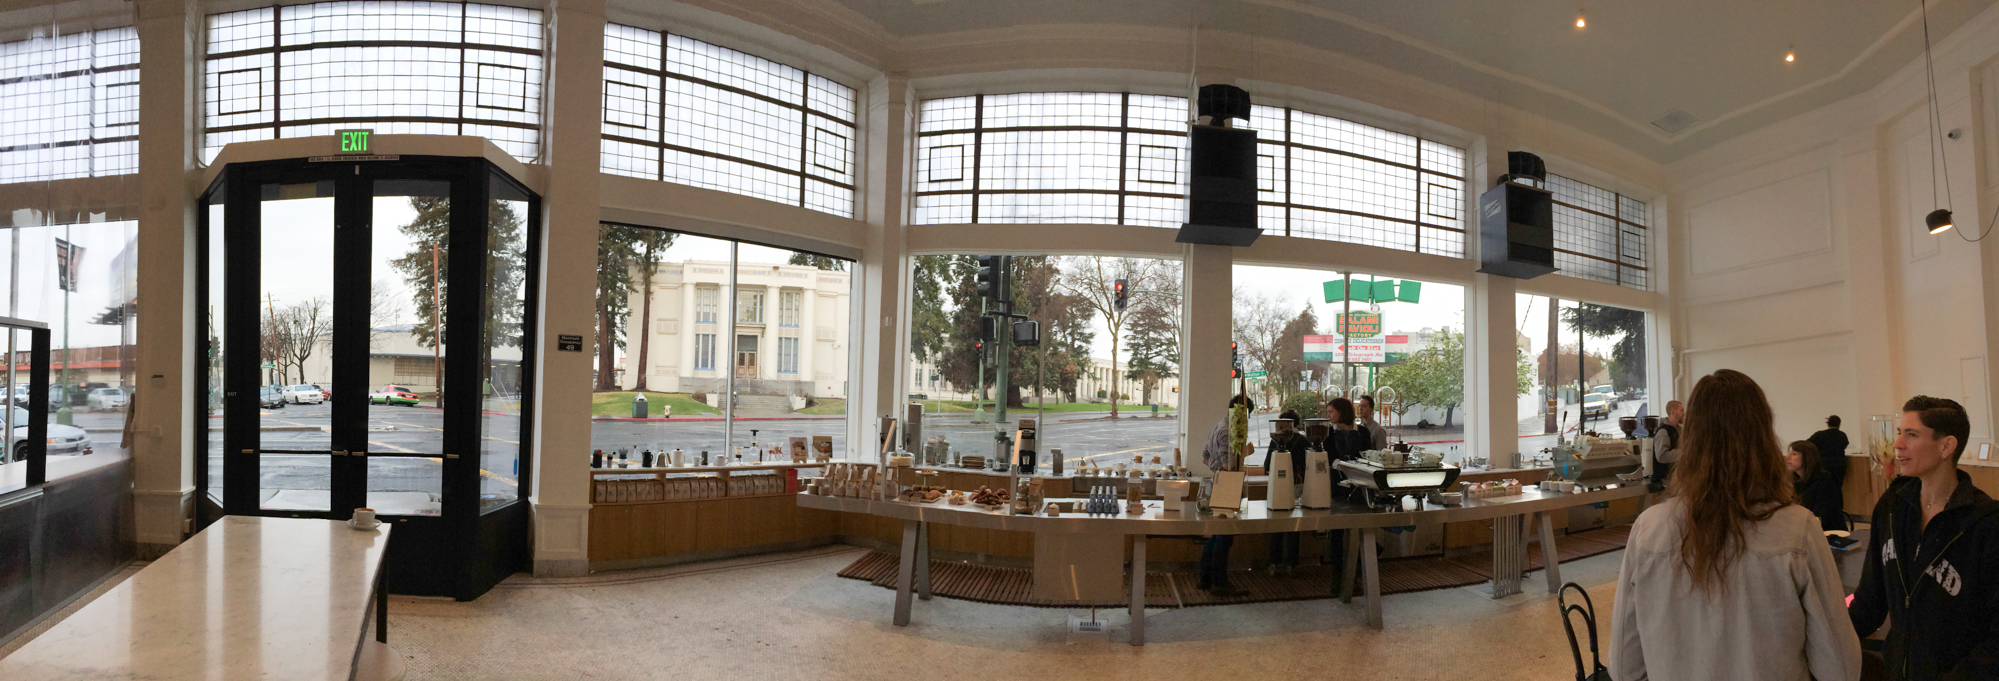 First Look Inside Blue Bottles New Oakland Cafe At The W